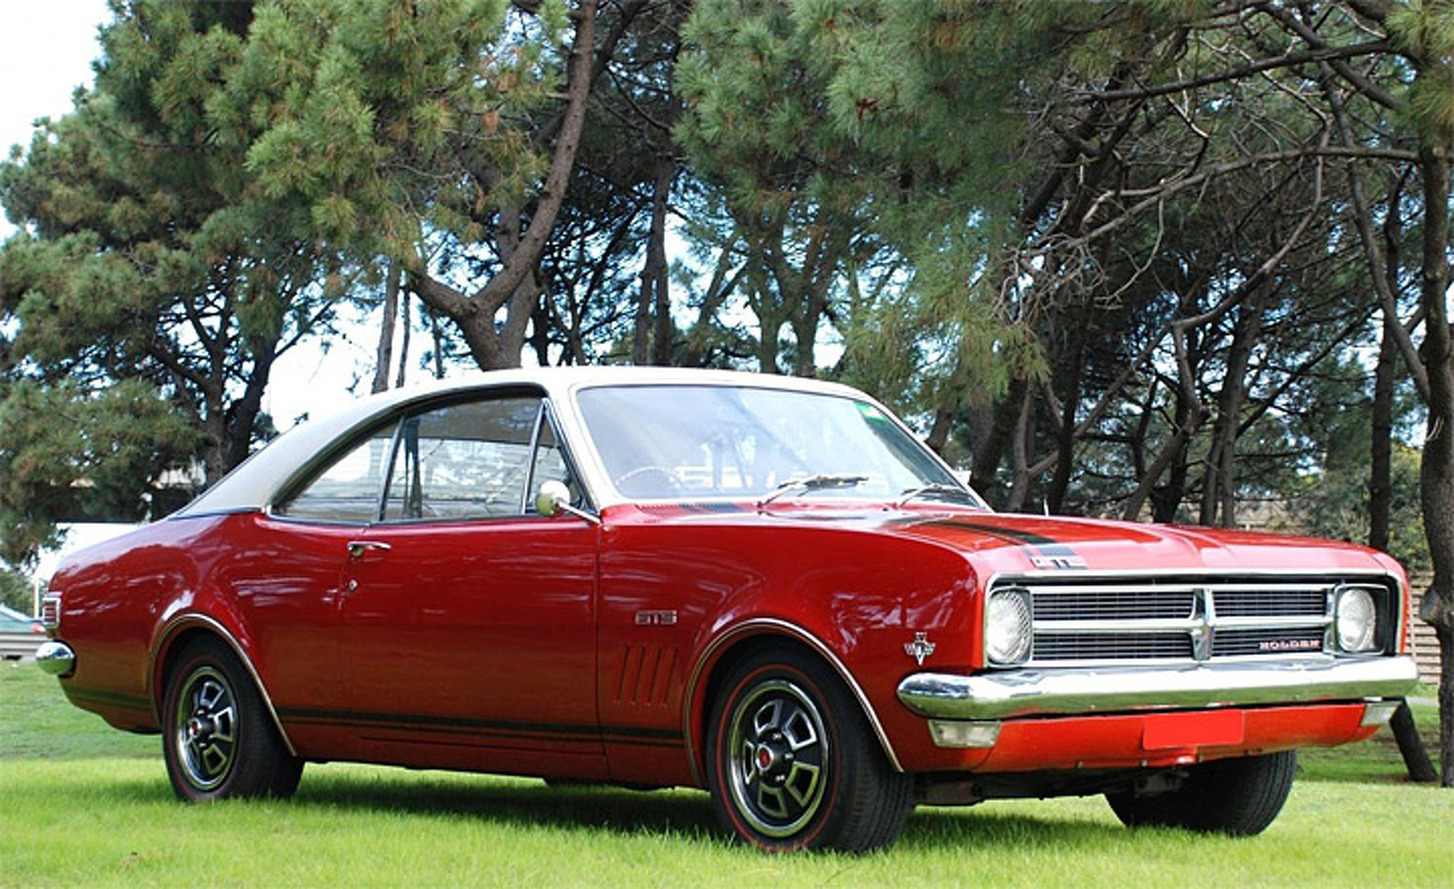 Iconic \'60s Muscle Car Isn\'t American, It\'s an Aussie